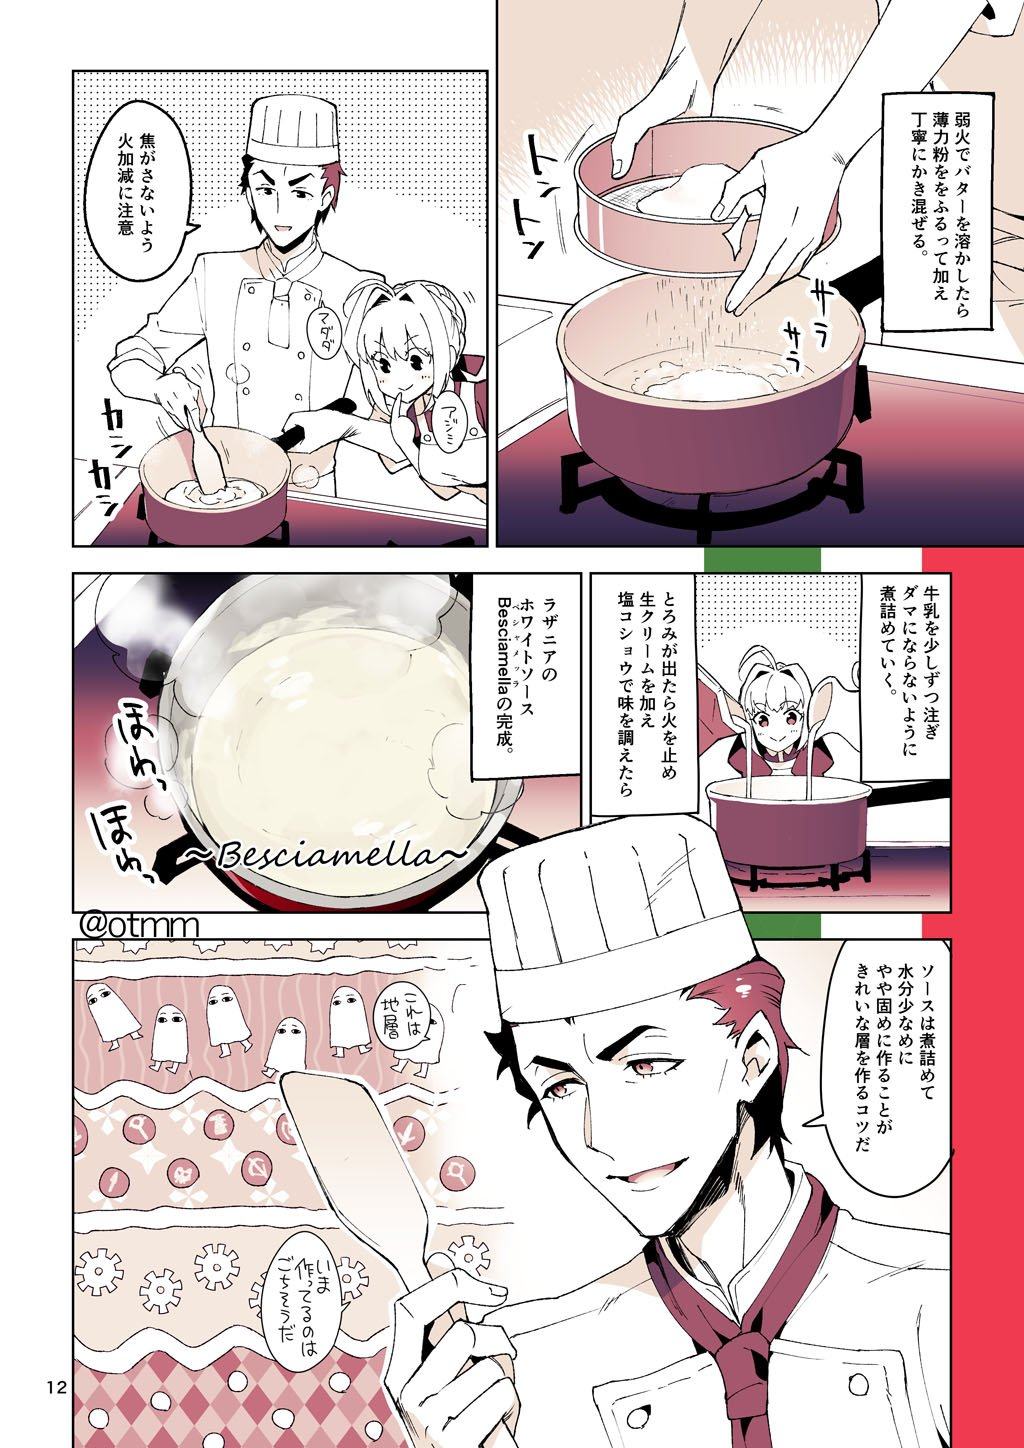 1boy 1girl ahoge apron braid chef_hat chef_uniform comic fate/grand_order fate_(series) finger_to_mouth flour french_braid gears hat highres julius_caesar_(fate/grand_order) medjed monochrome nero_claudius_(fate) nero_claudius_(fate)_(all) pot pouring red redrop sifter smile spatula stirring translation_request twitter_username waist_apron